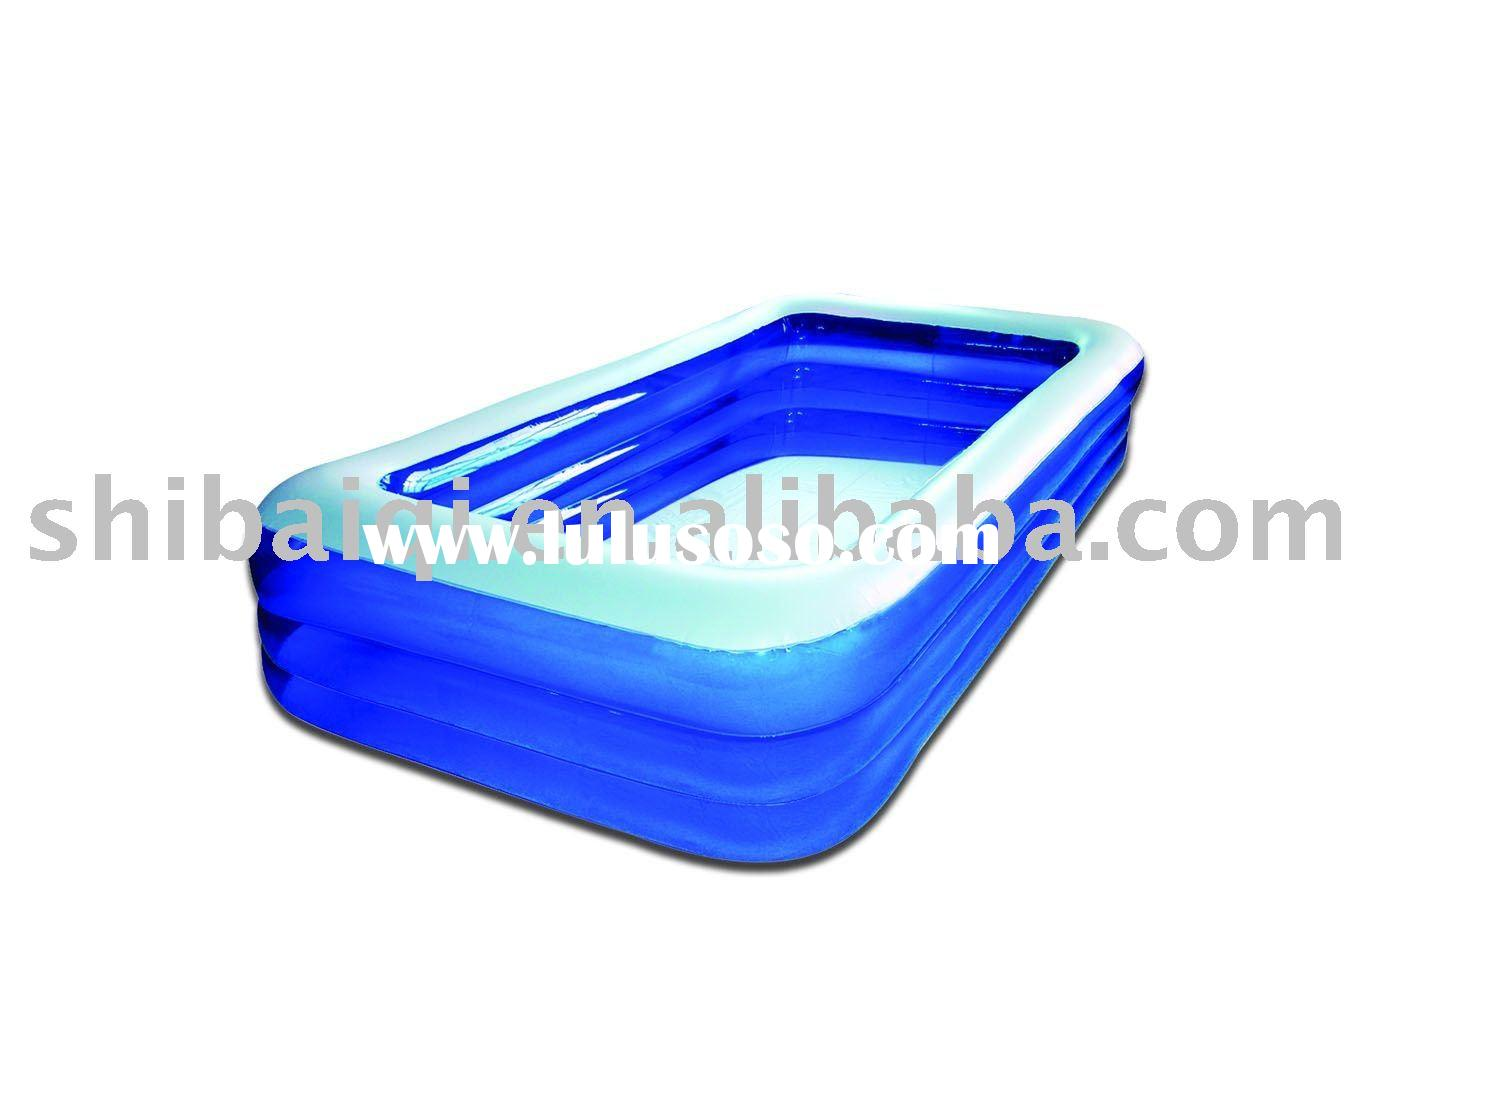 Plastic Outdoor Water Pool